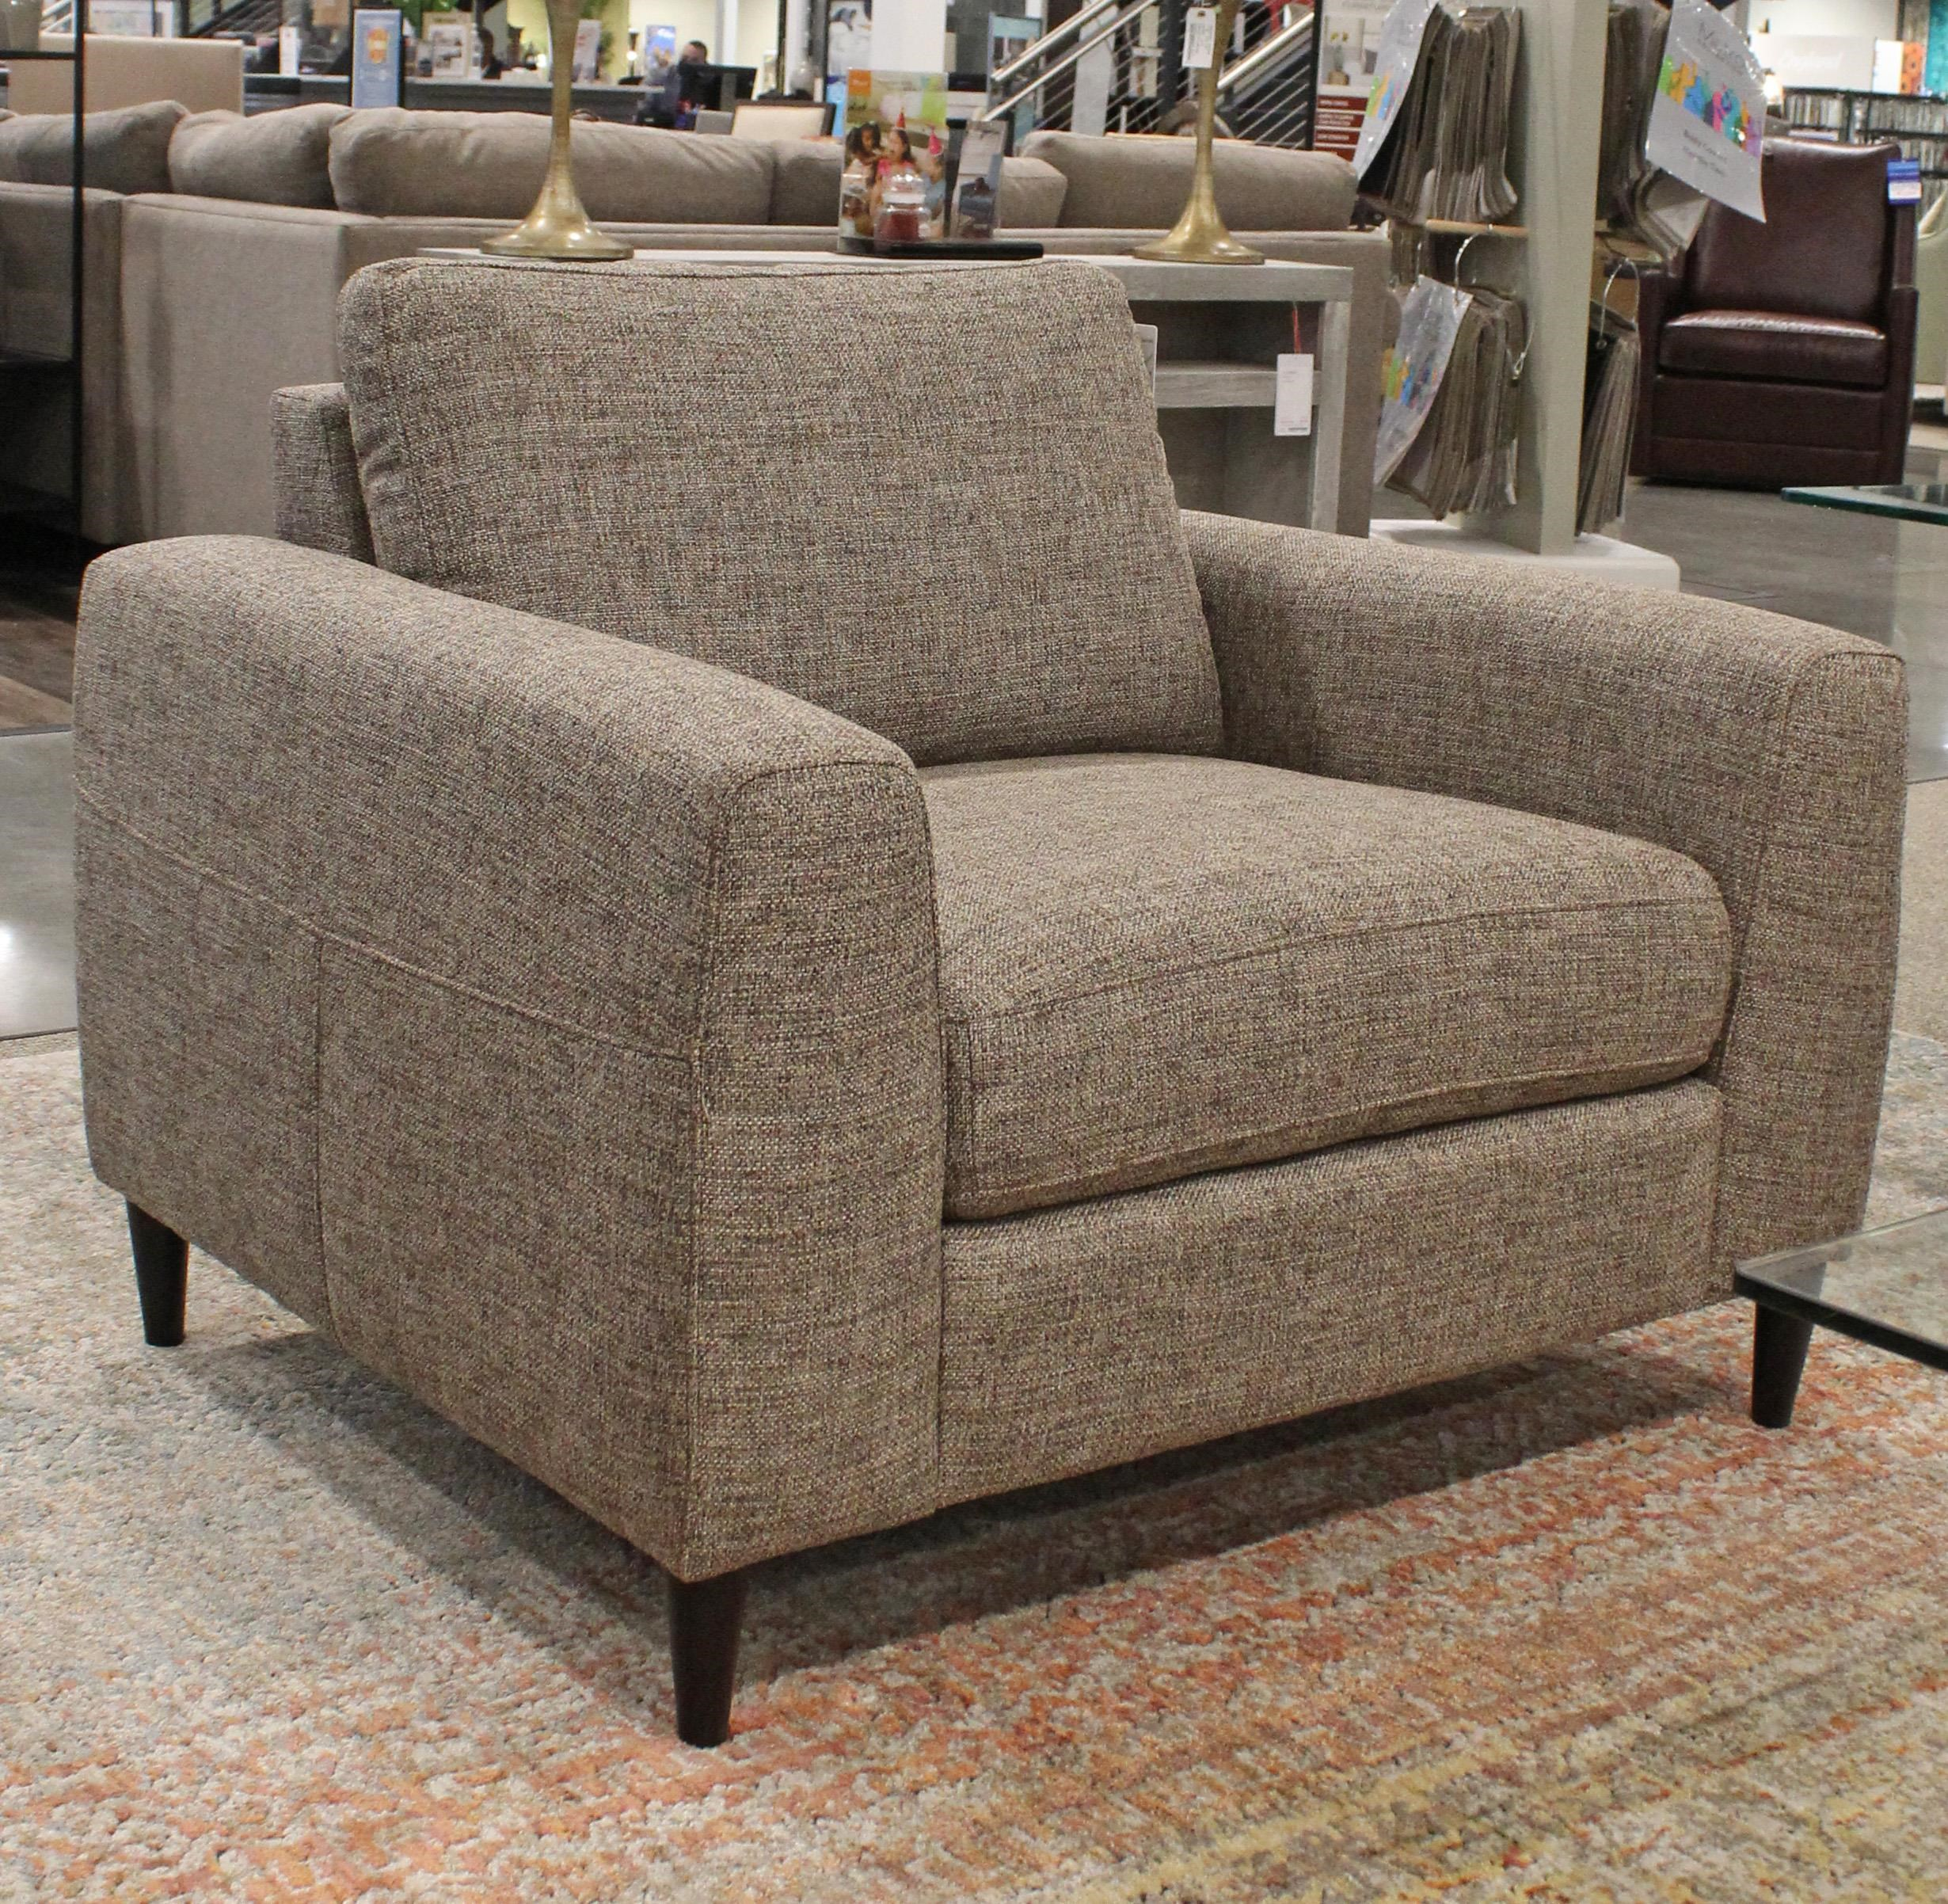 Atticus Upholstered Chair by Palliser at Belfort Furniture